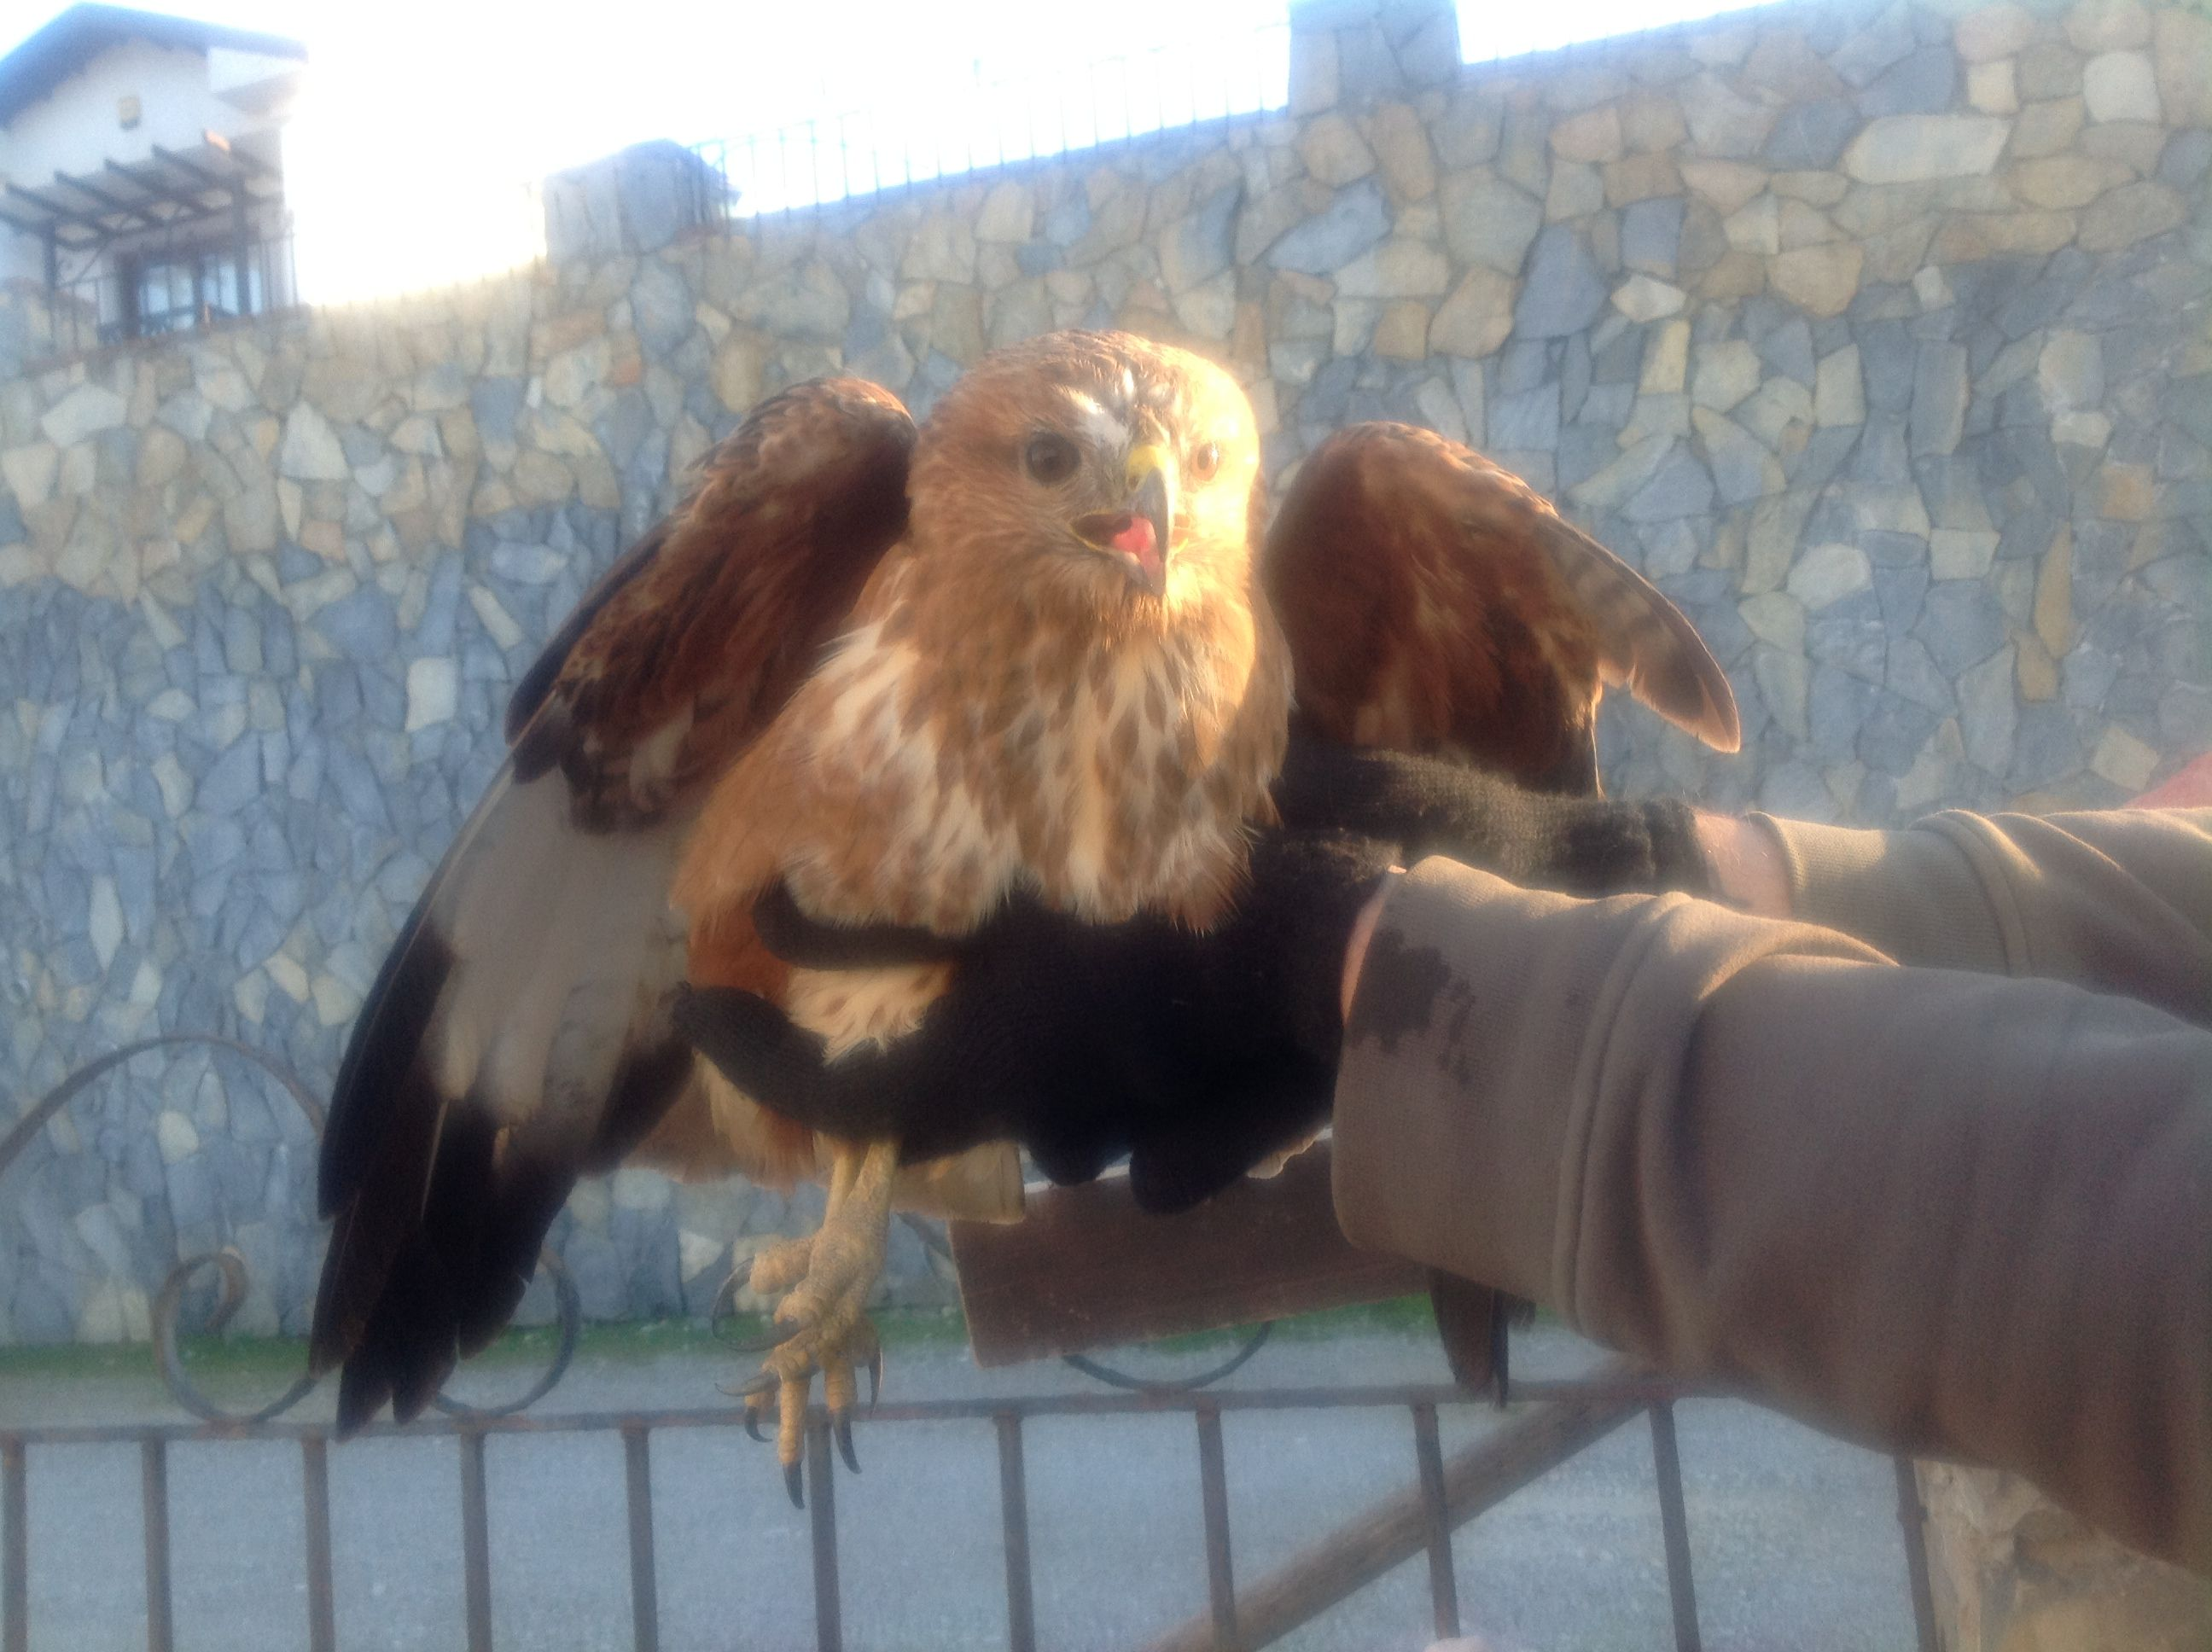 Injured Hawk. Cared fr it a few days then released it back to the wild, where it was found, no idea exact kind of Hawk.